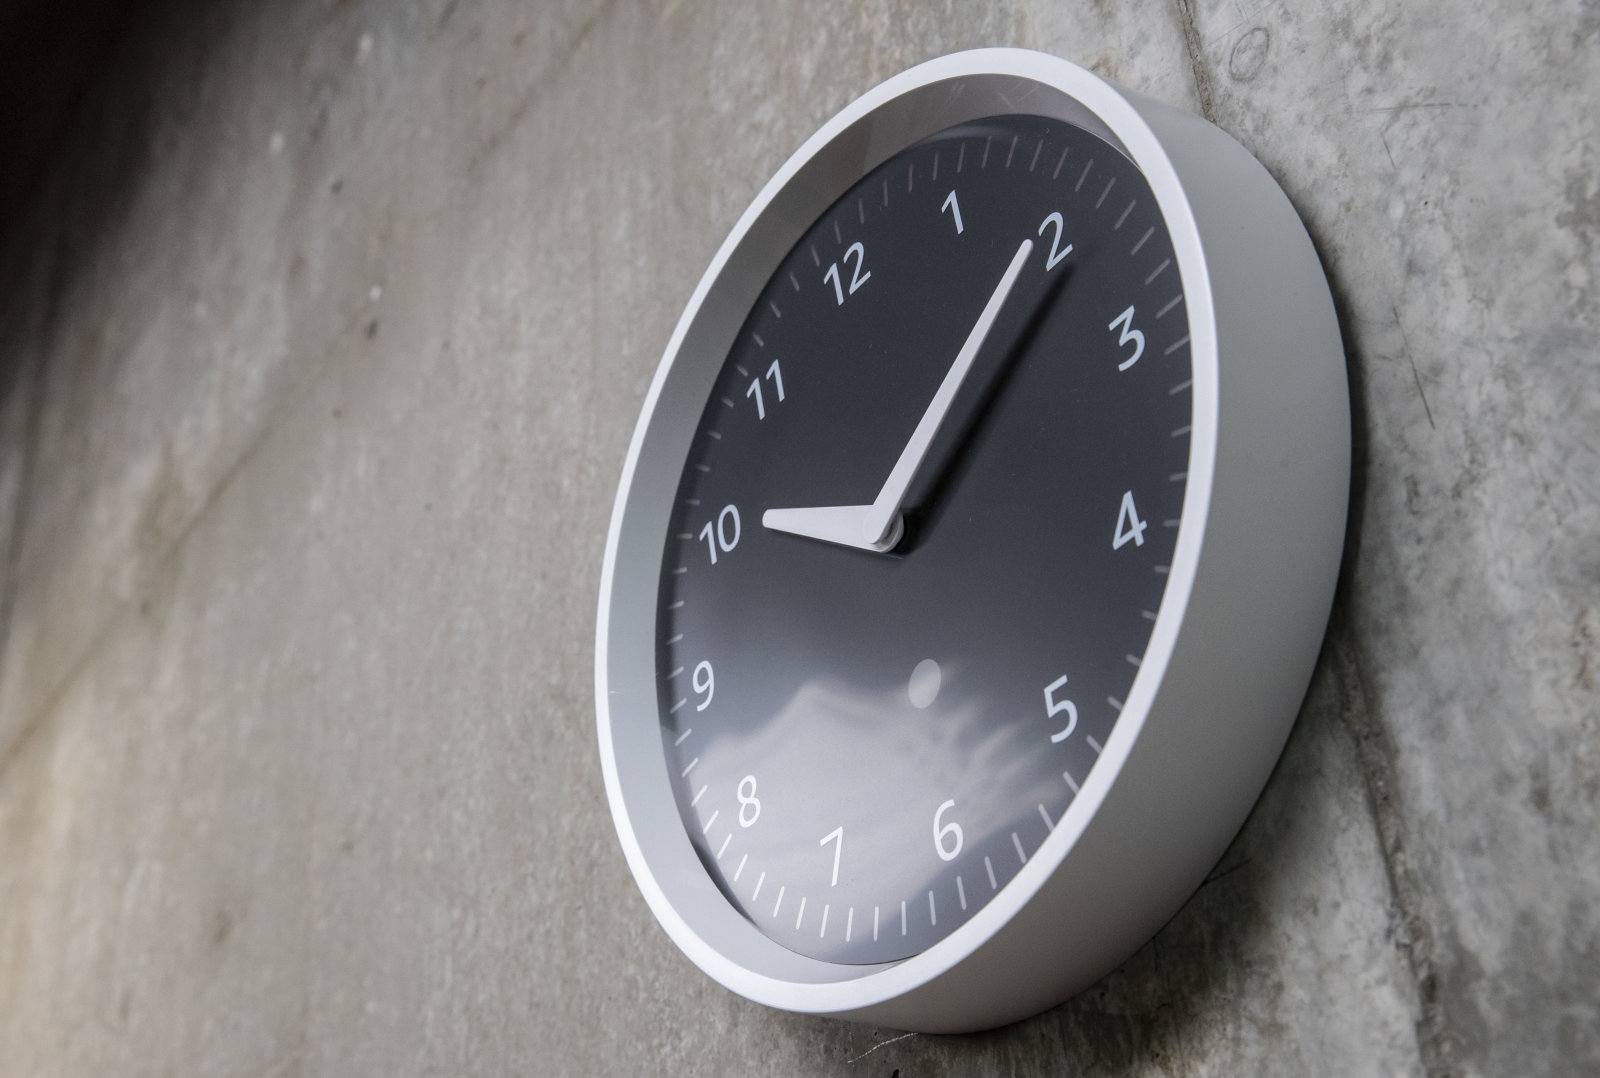 Amazon's Echo Wall Clock is back on sale after connectivity fix | DeviceDaily.com